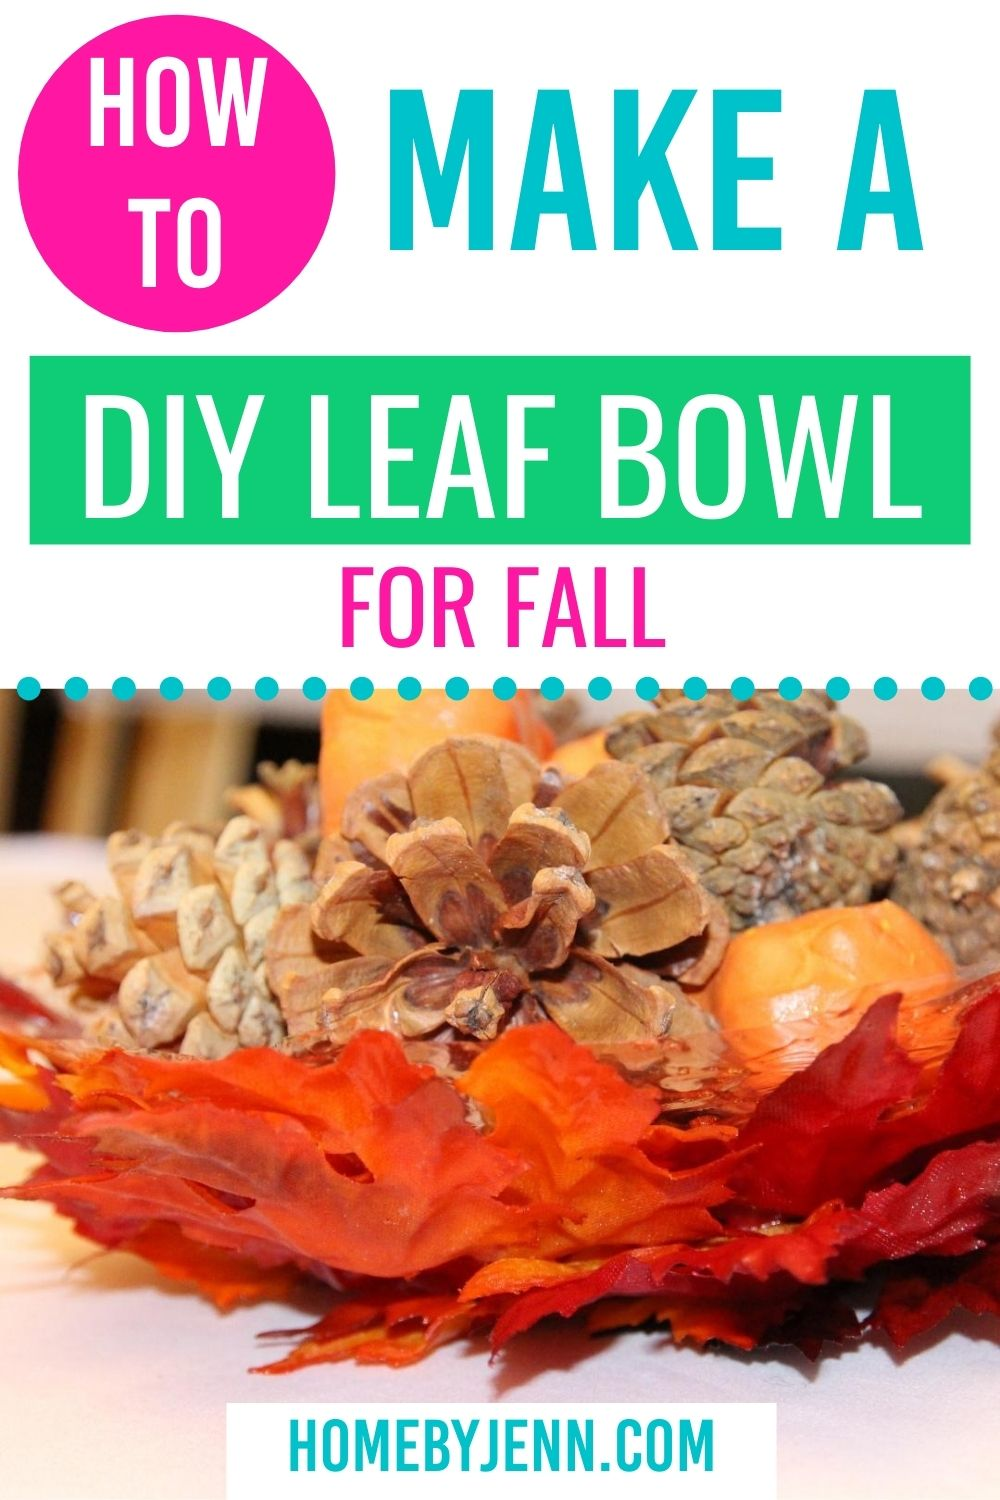 Add some fall decor to your home with this DIY leaf bowl. The fall craft is very simple to make. #fall #falldecor #craft #DIY #fallcrafts #art #kidcrafts #homedecor #easycrafts #leafcraftideas via @homebyjenn